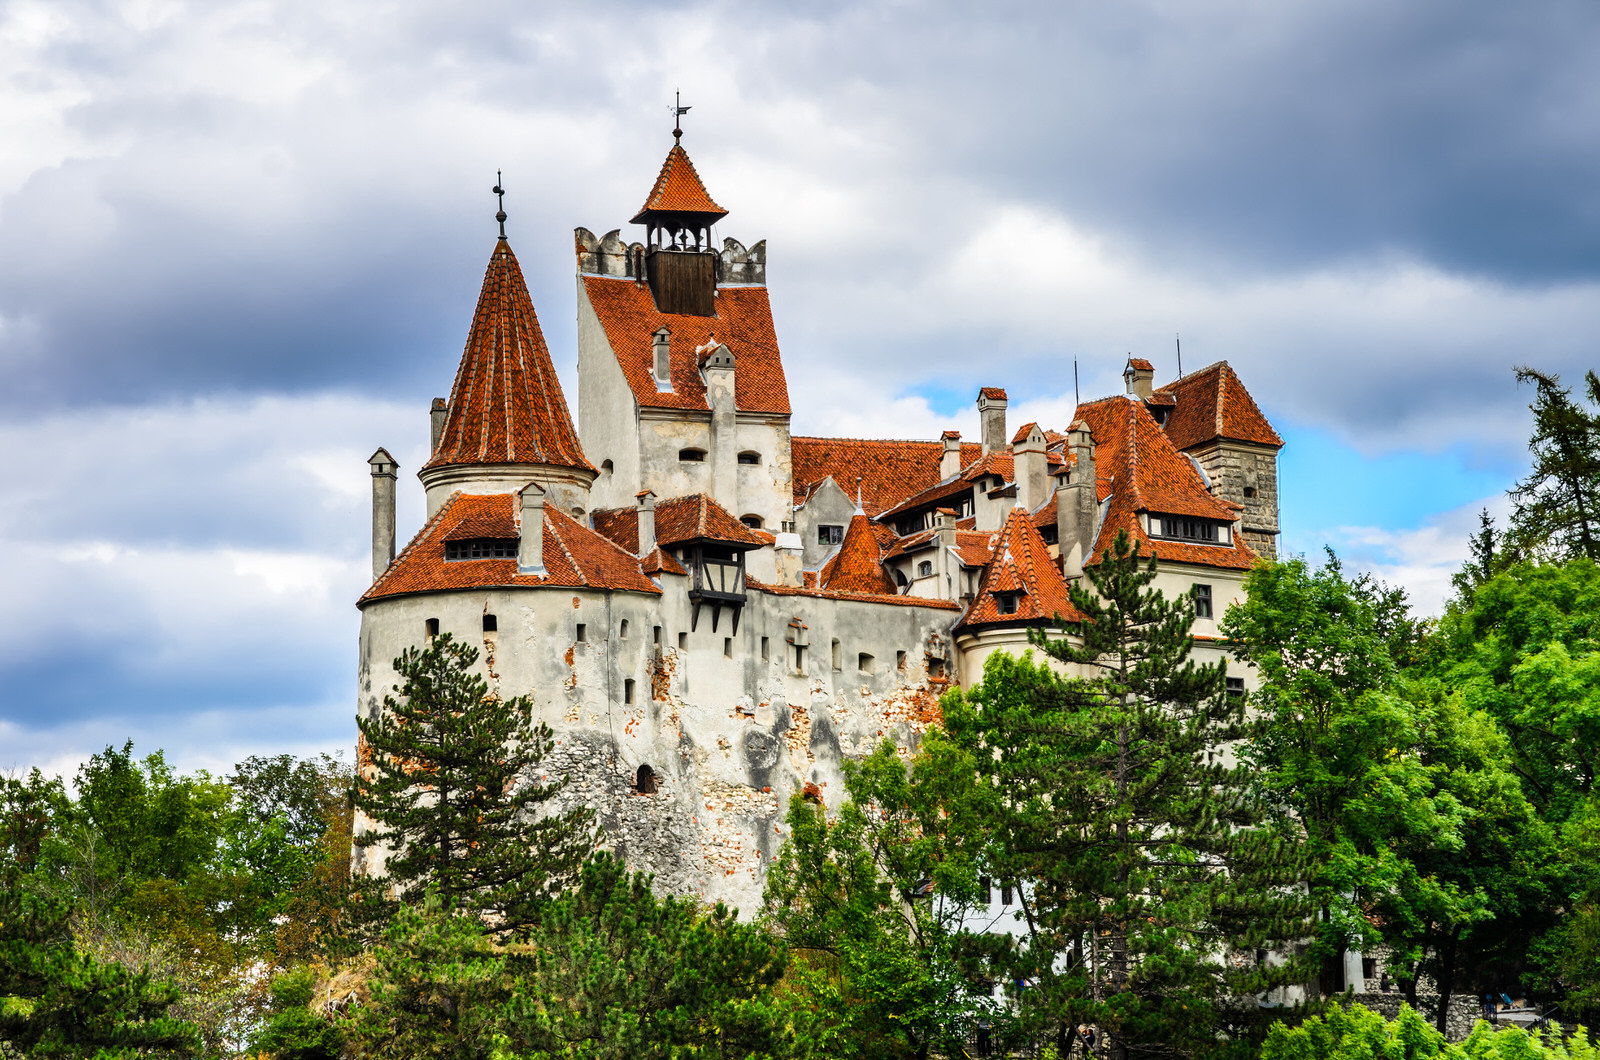 Bran Castle, Brasov, Romania. A medieval fortress associated with Dracula that stands isolated at the border between Wallachia and Transylvania © Emi Cristea / Shutterstock